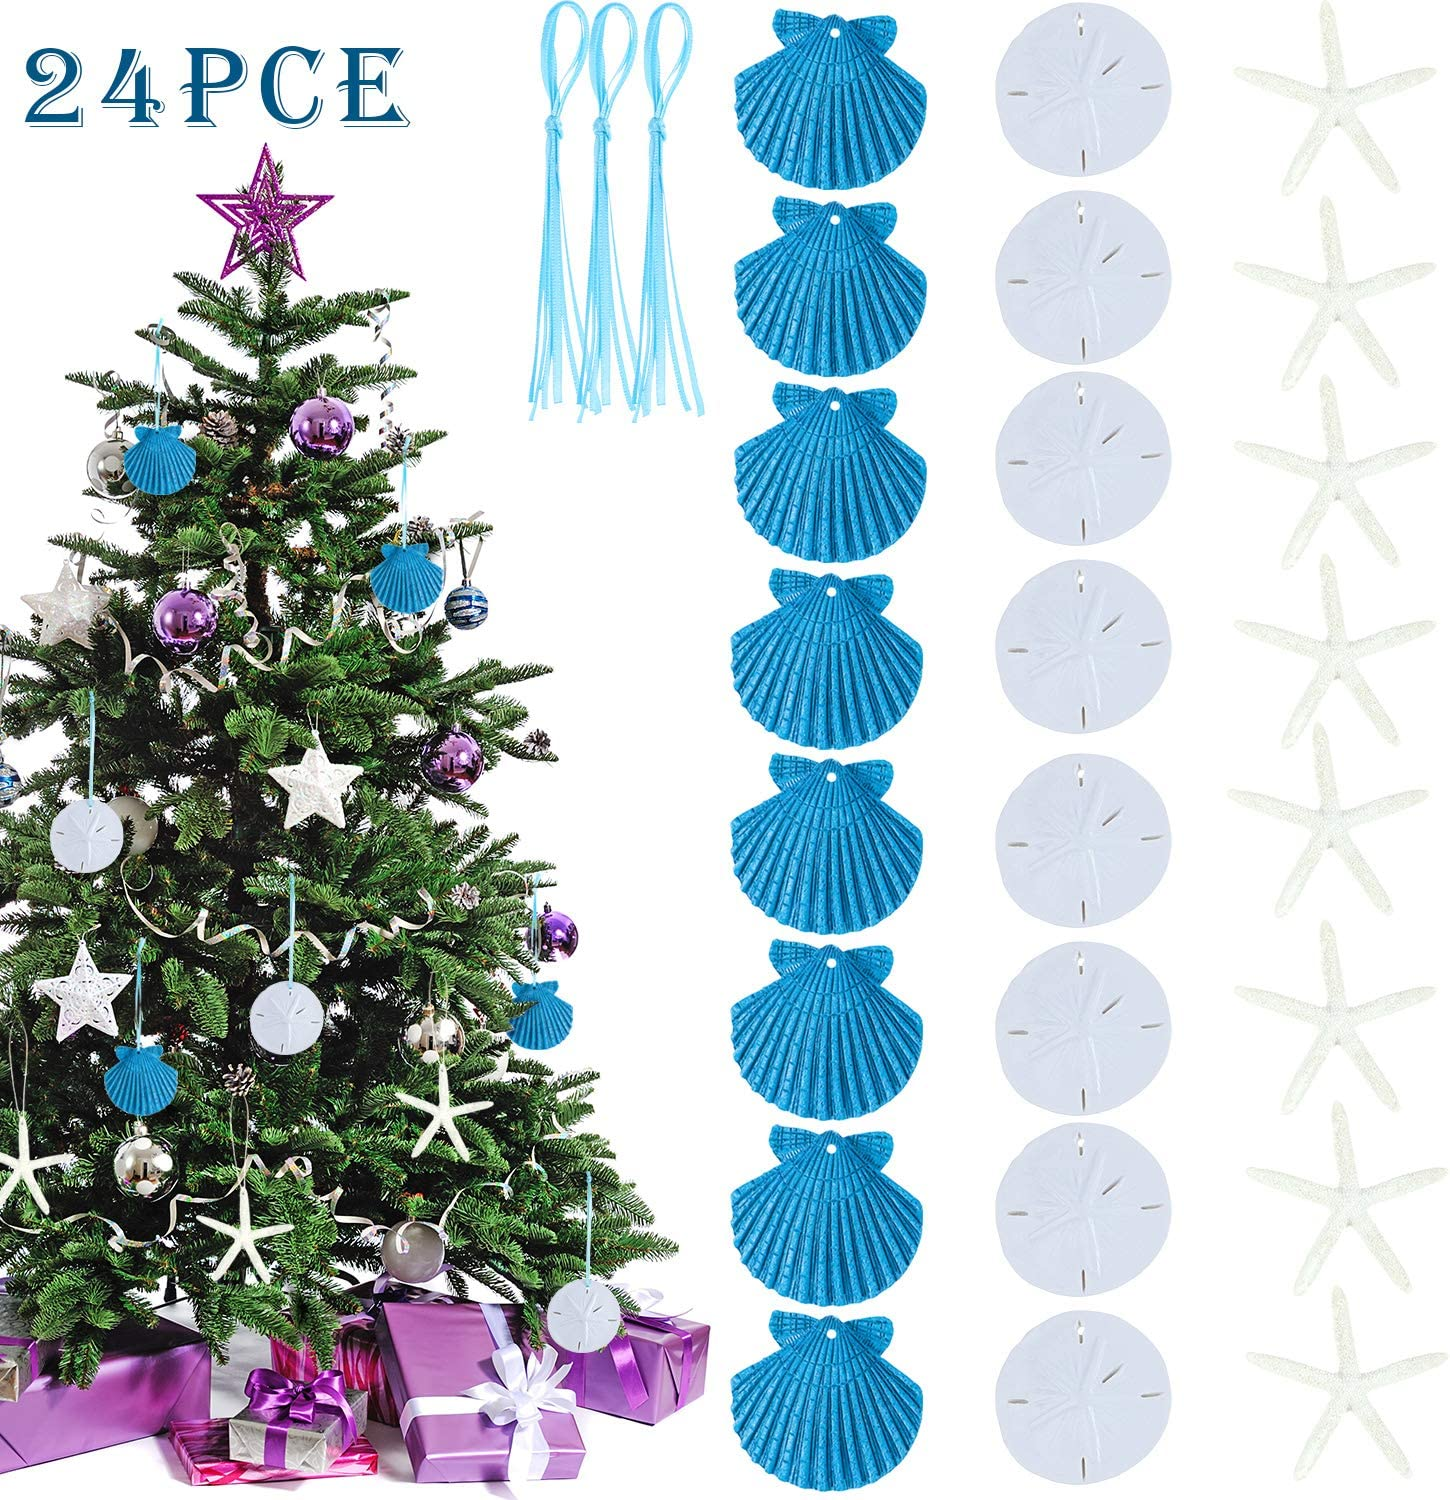 20 Pieces Christmas Resin Seashell Ornaments Sand Dollar Ornaments Shell Sand Dollar Christmas Hangings with Blue Ribbon for Christmas Tree DIY Craft Decorations